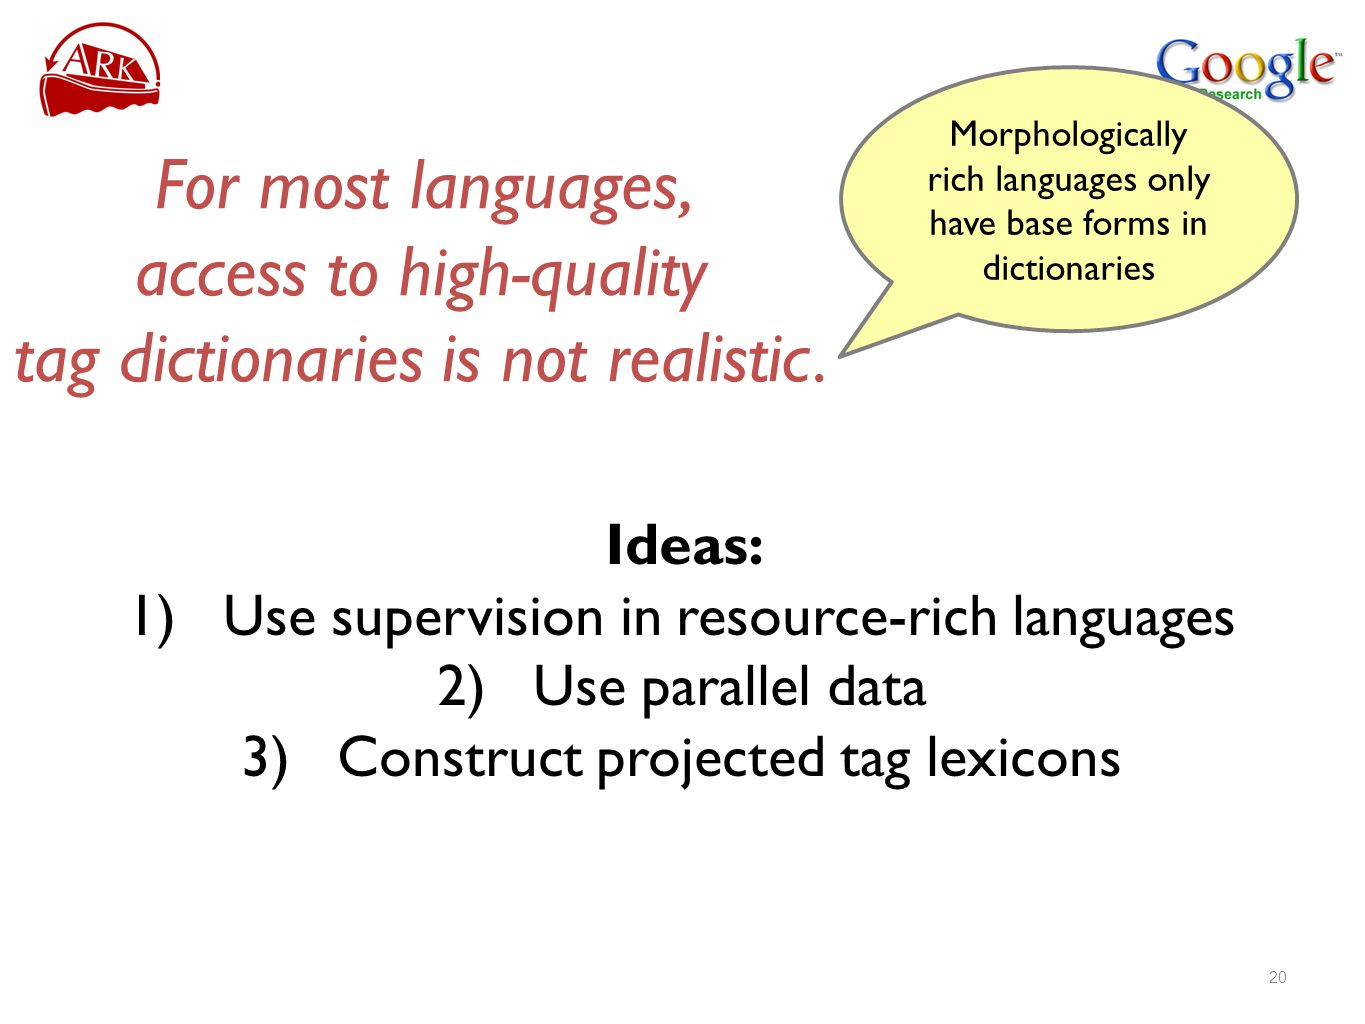 For most languages, access to high-quality tag dictionaries is not realistic. Ideas: 1)Use supervision in resource-rich languages 2)Use parallel data